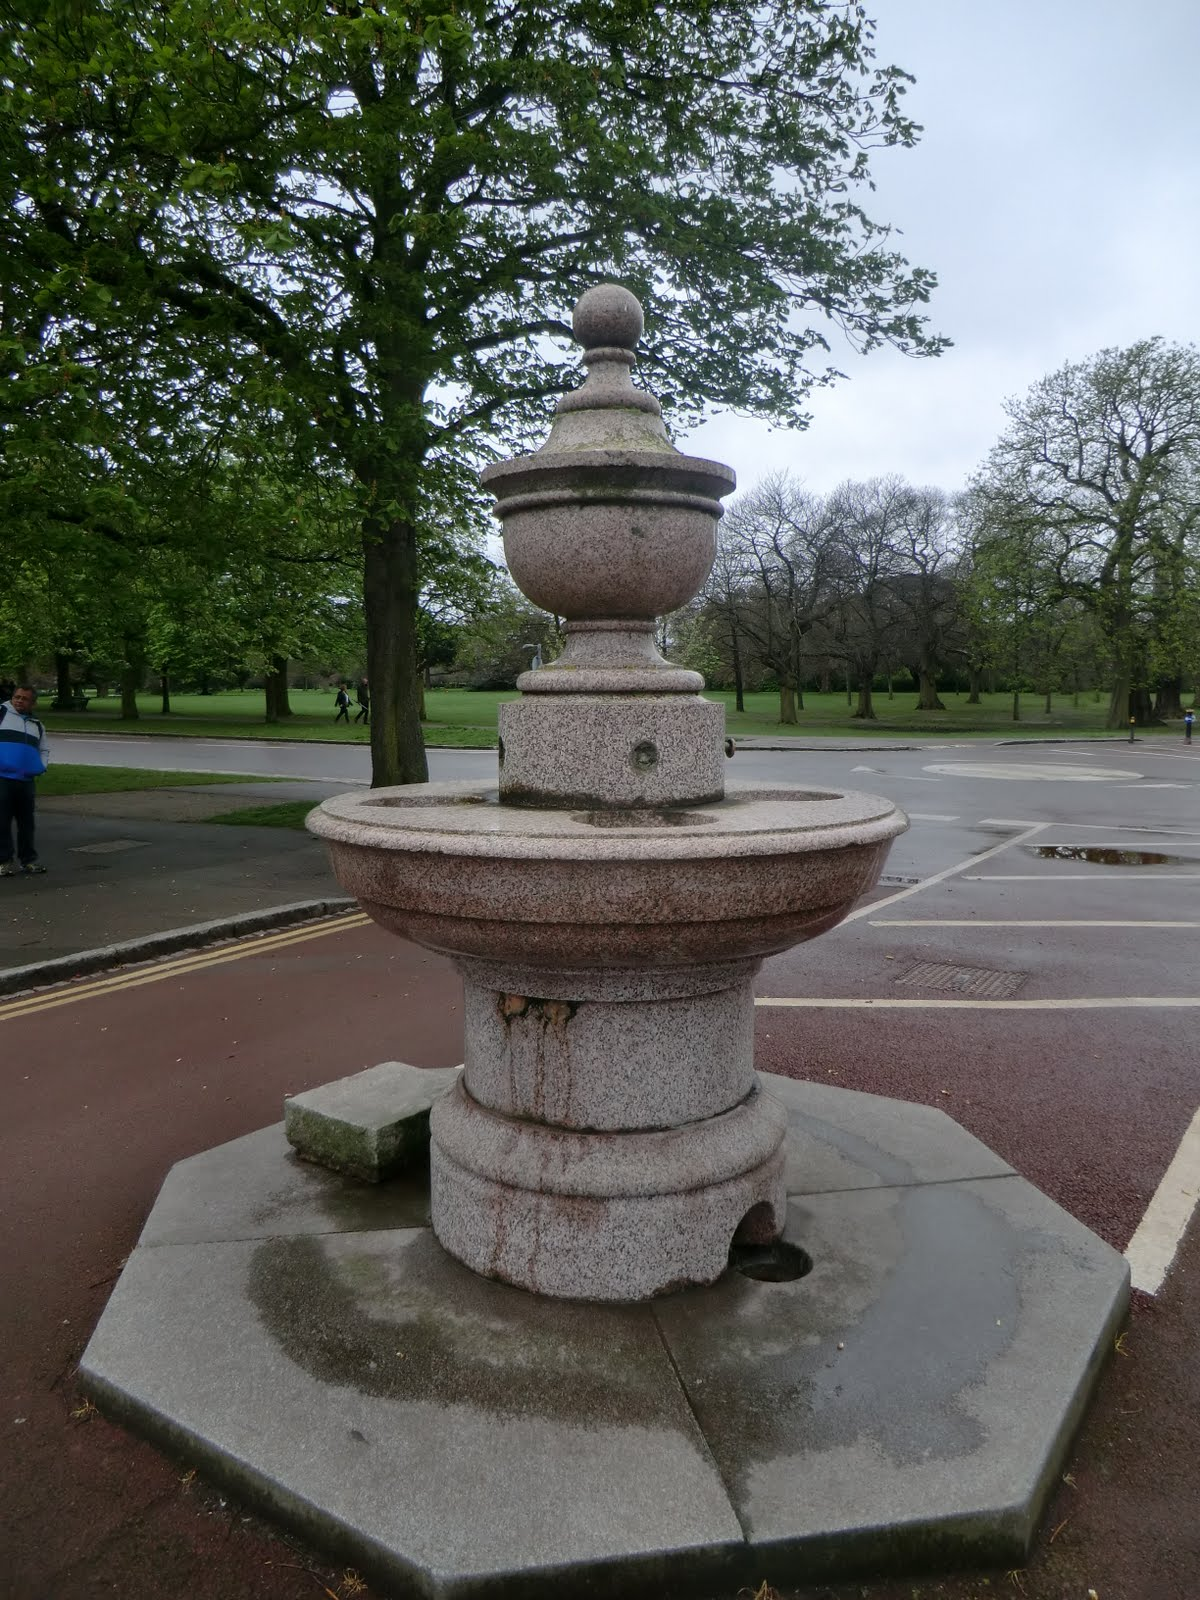 CIMG0347 Drinking fountain, Greenwich Park